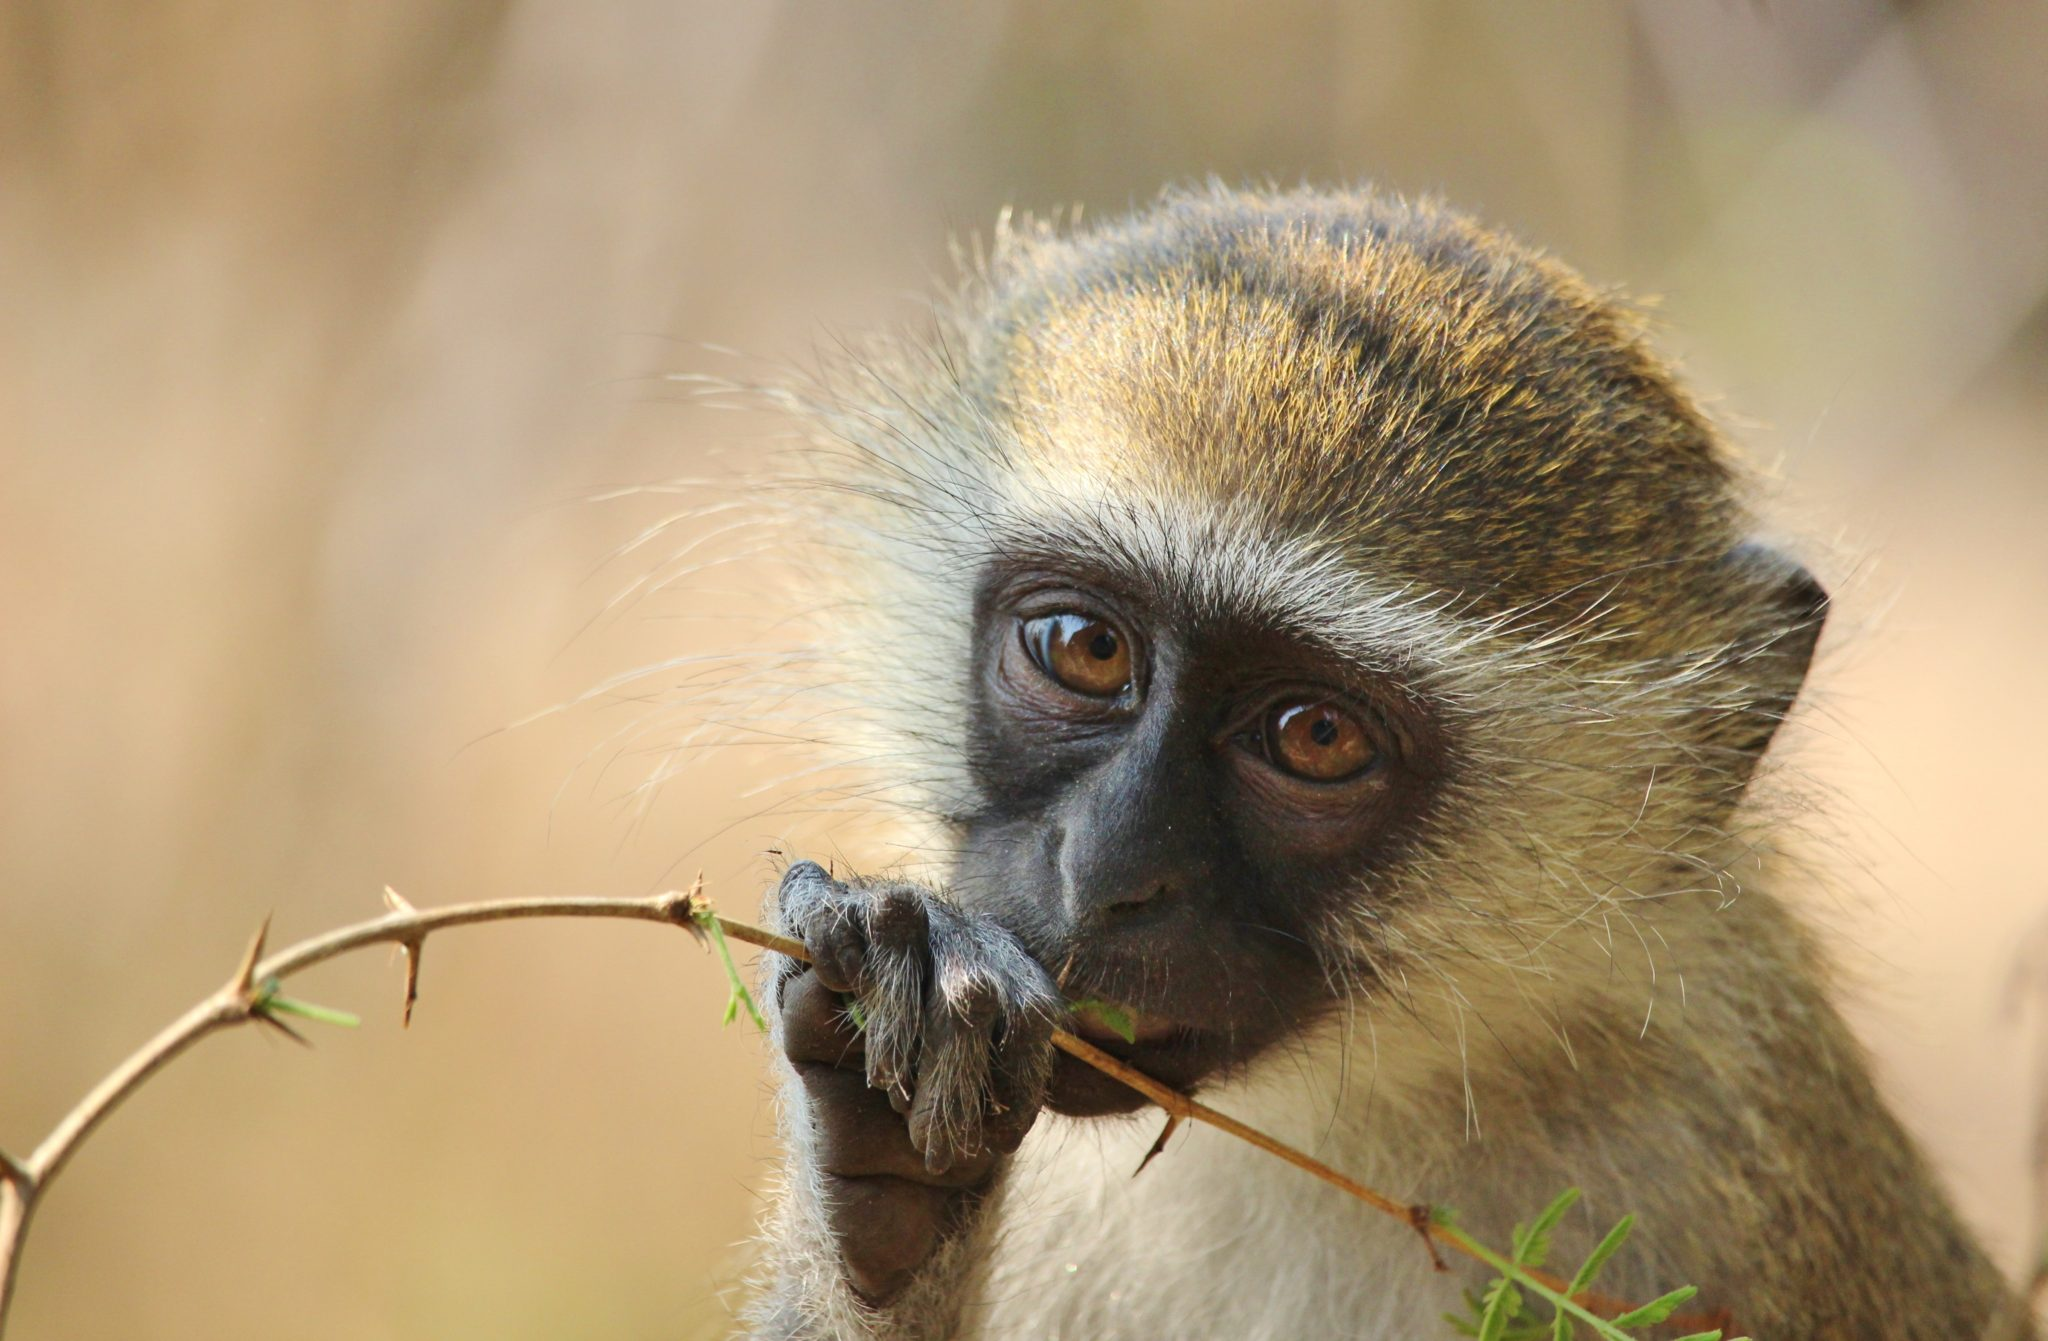 A vervet monkey in Liwonde National Park, Malawi